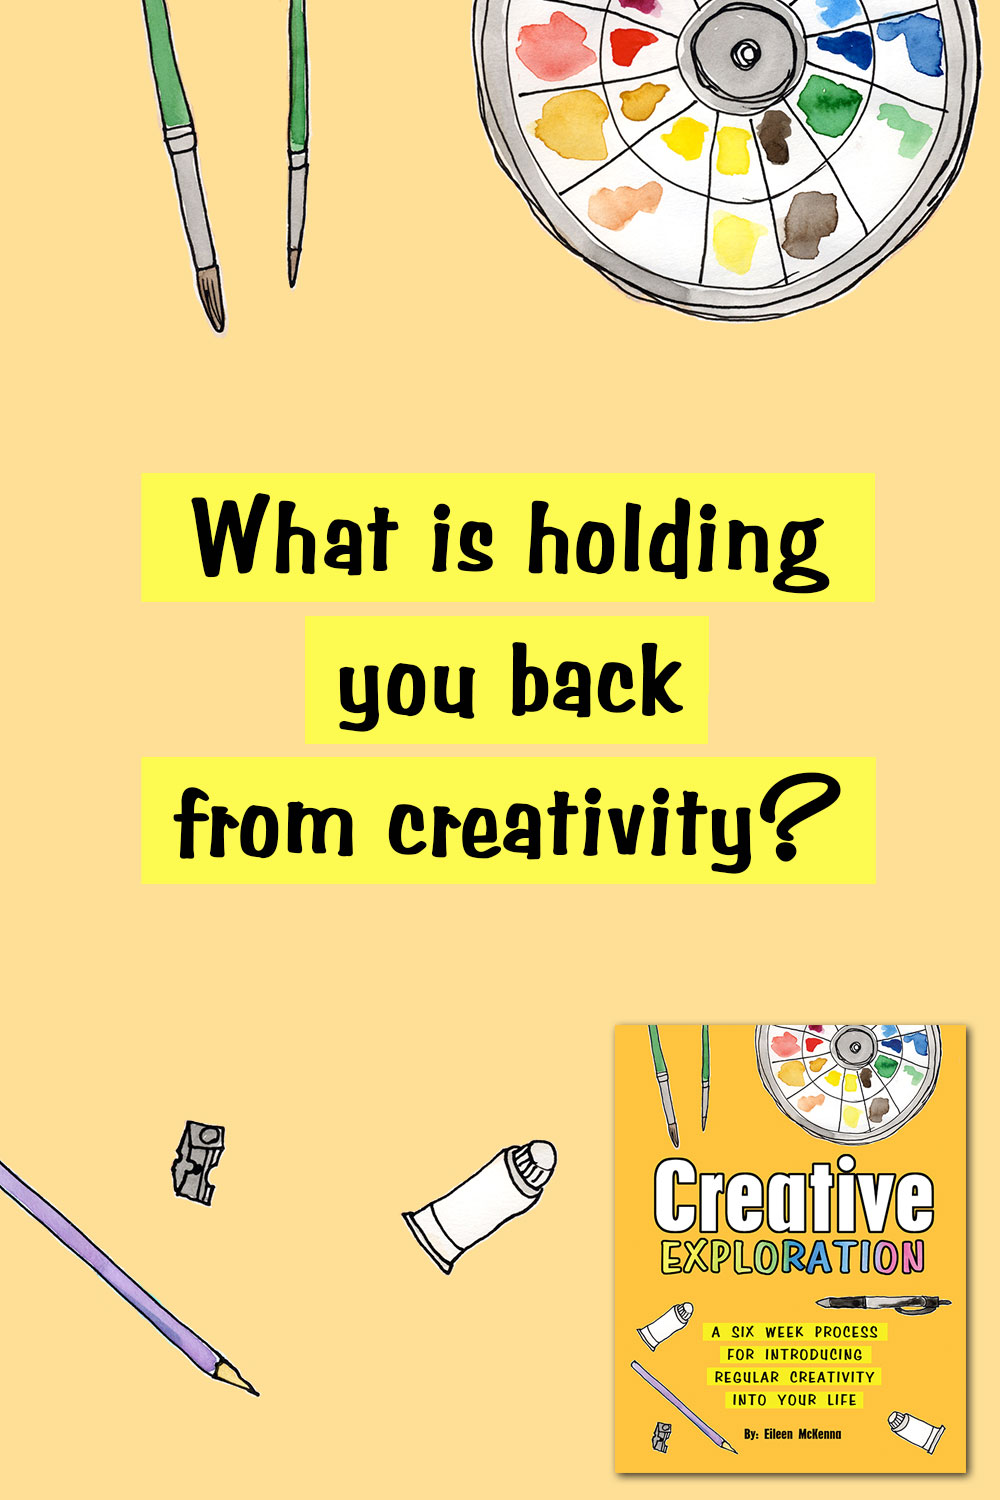 What is holding you back from creativity? Start an art practice Explore creativity